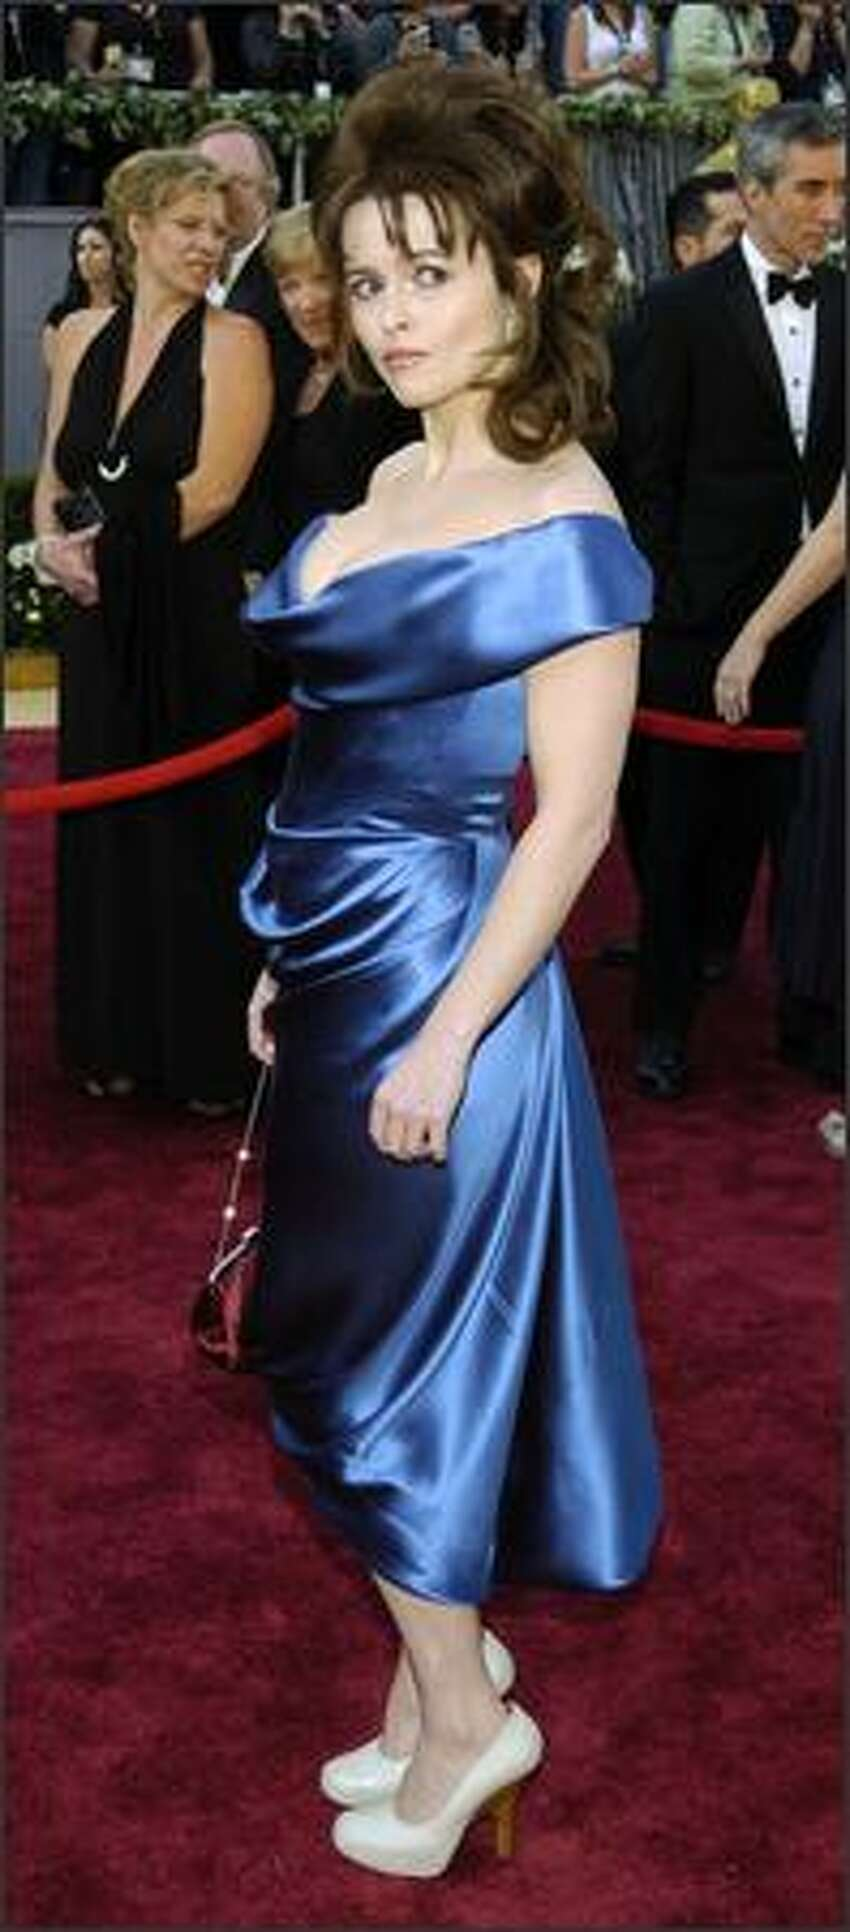 Actress Helena Bonham Carter arrives for the 78th Academy Awards. Her husband, director Tim Burton is nominated in the best animated feature film for